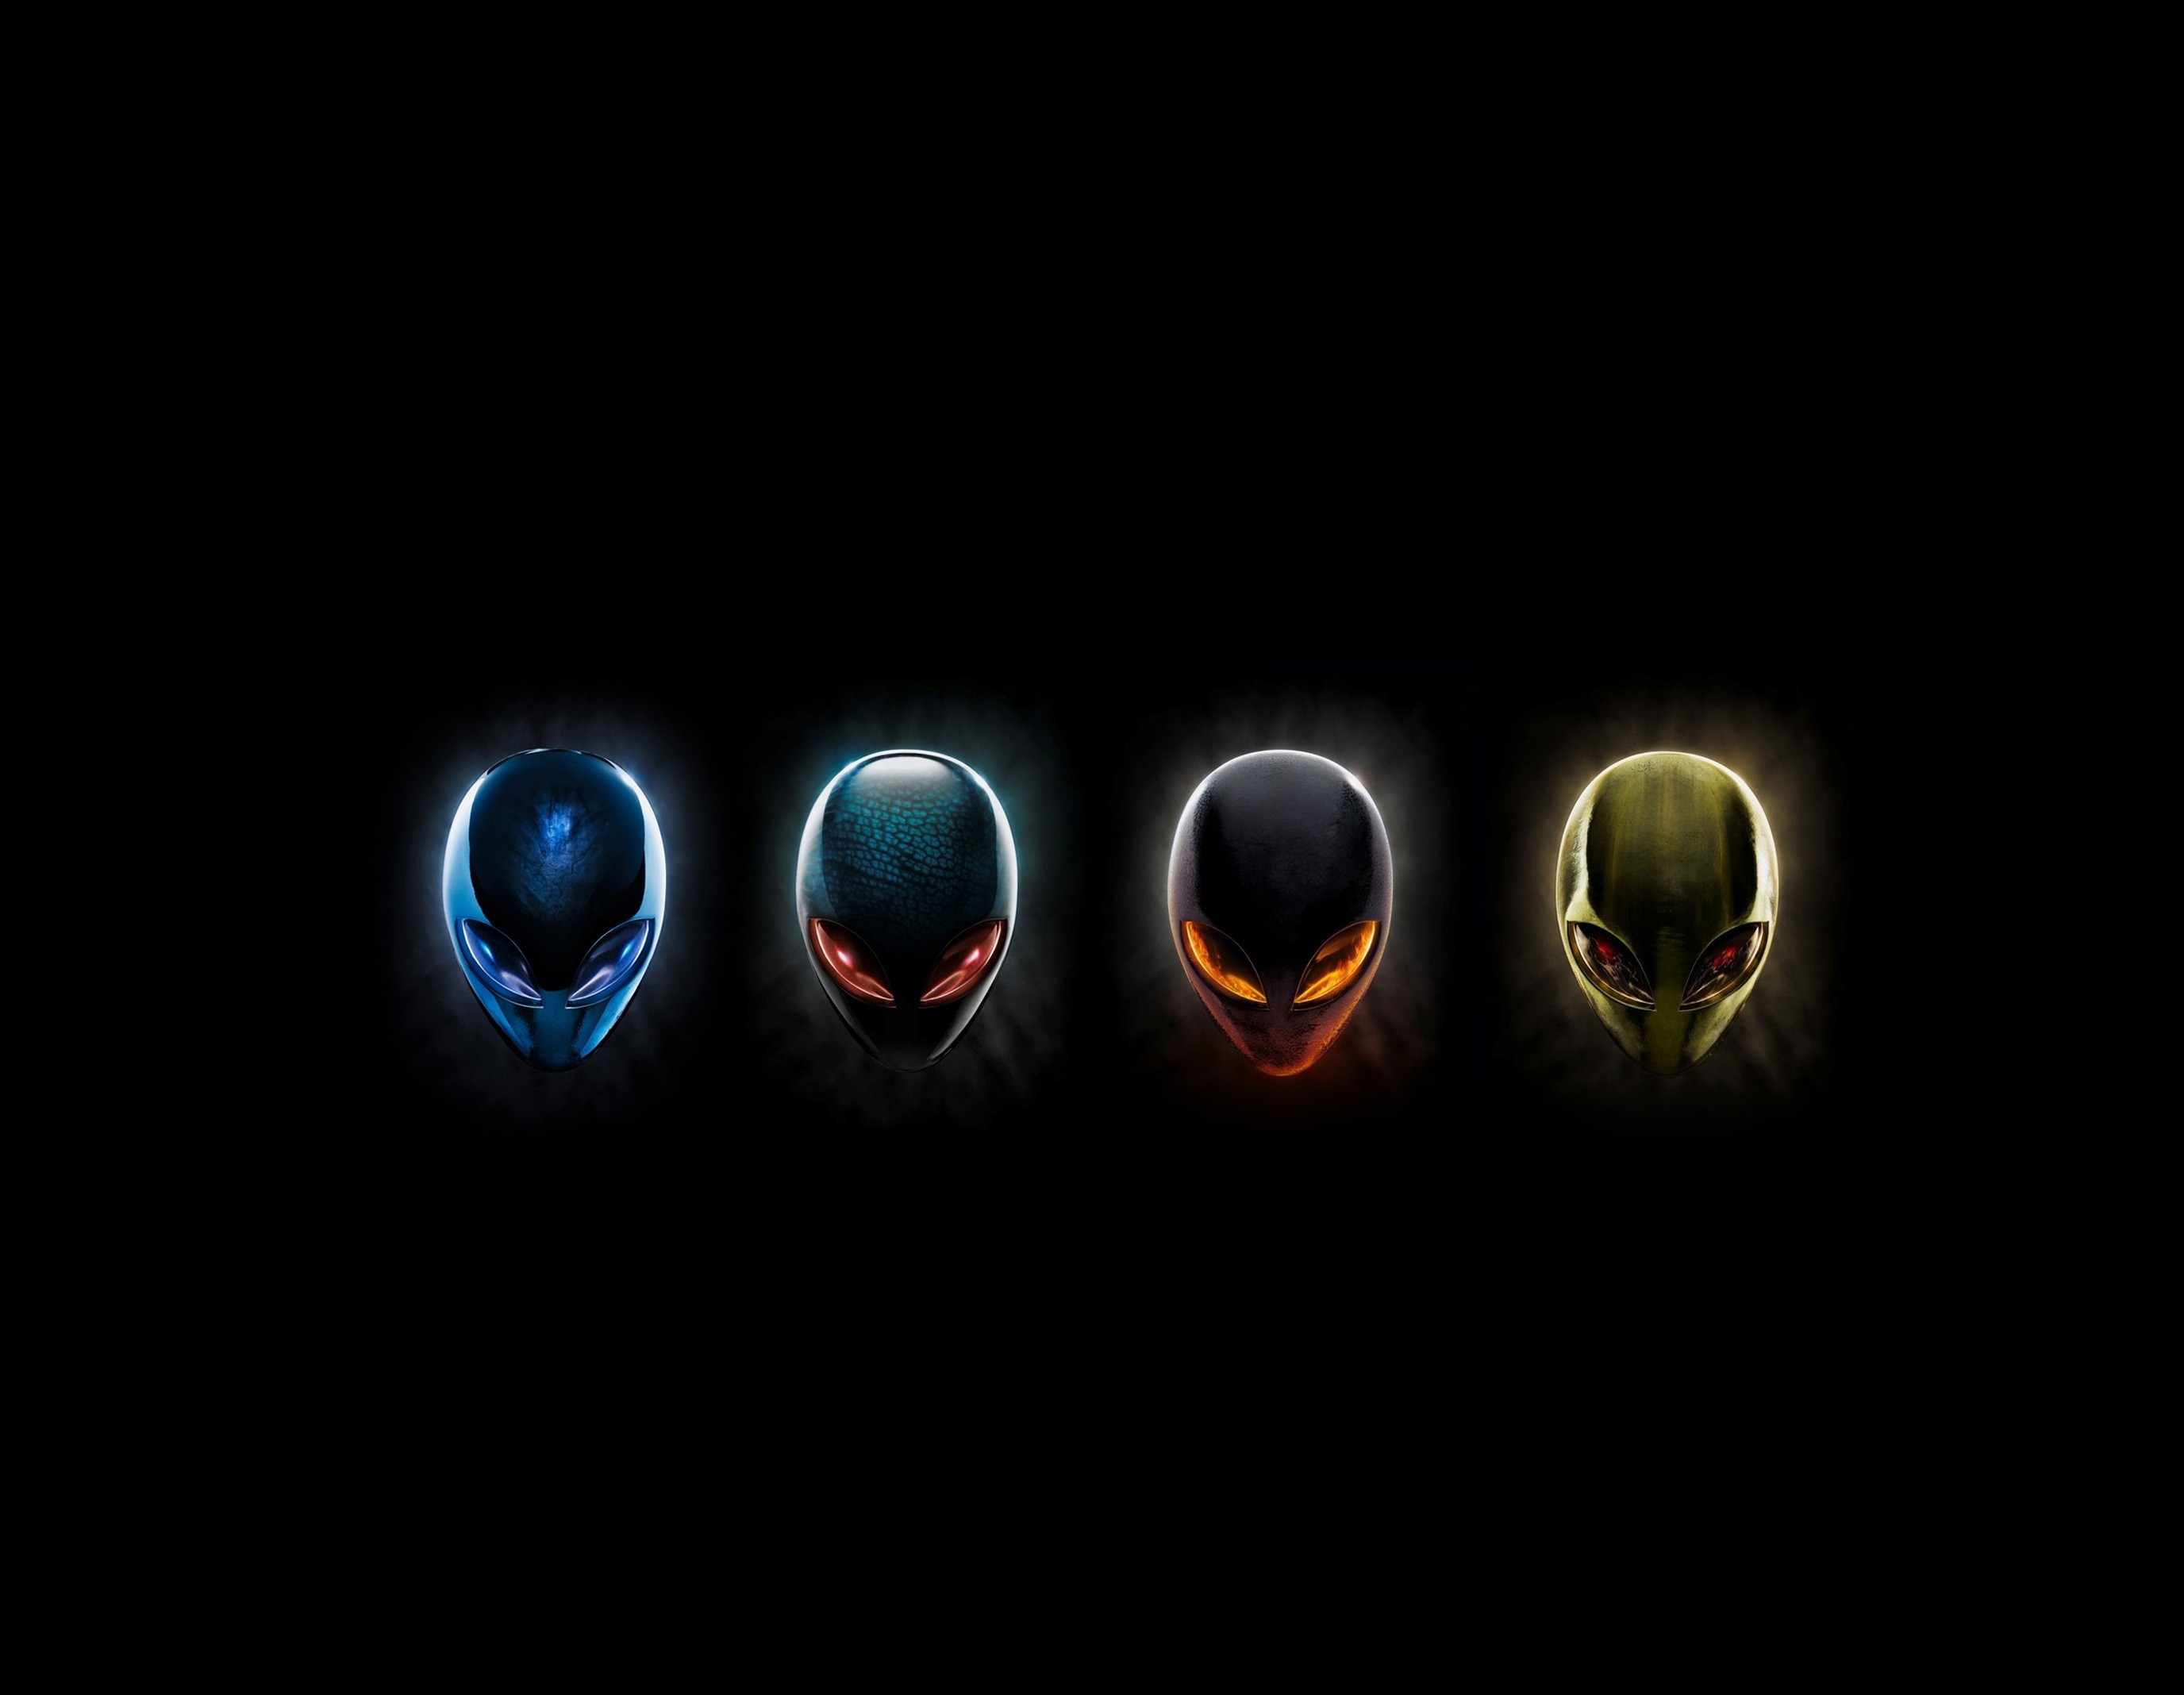 Alienware Backgrounds, Pictures, Images